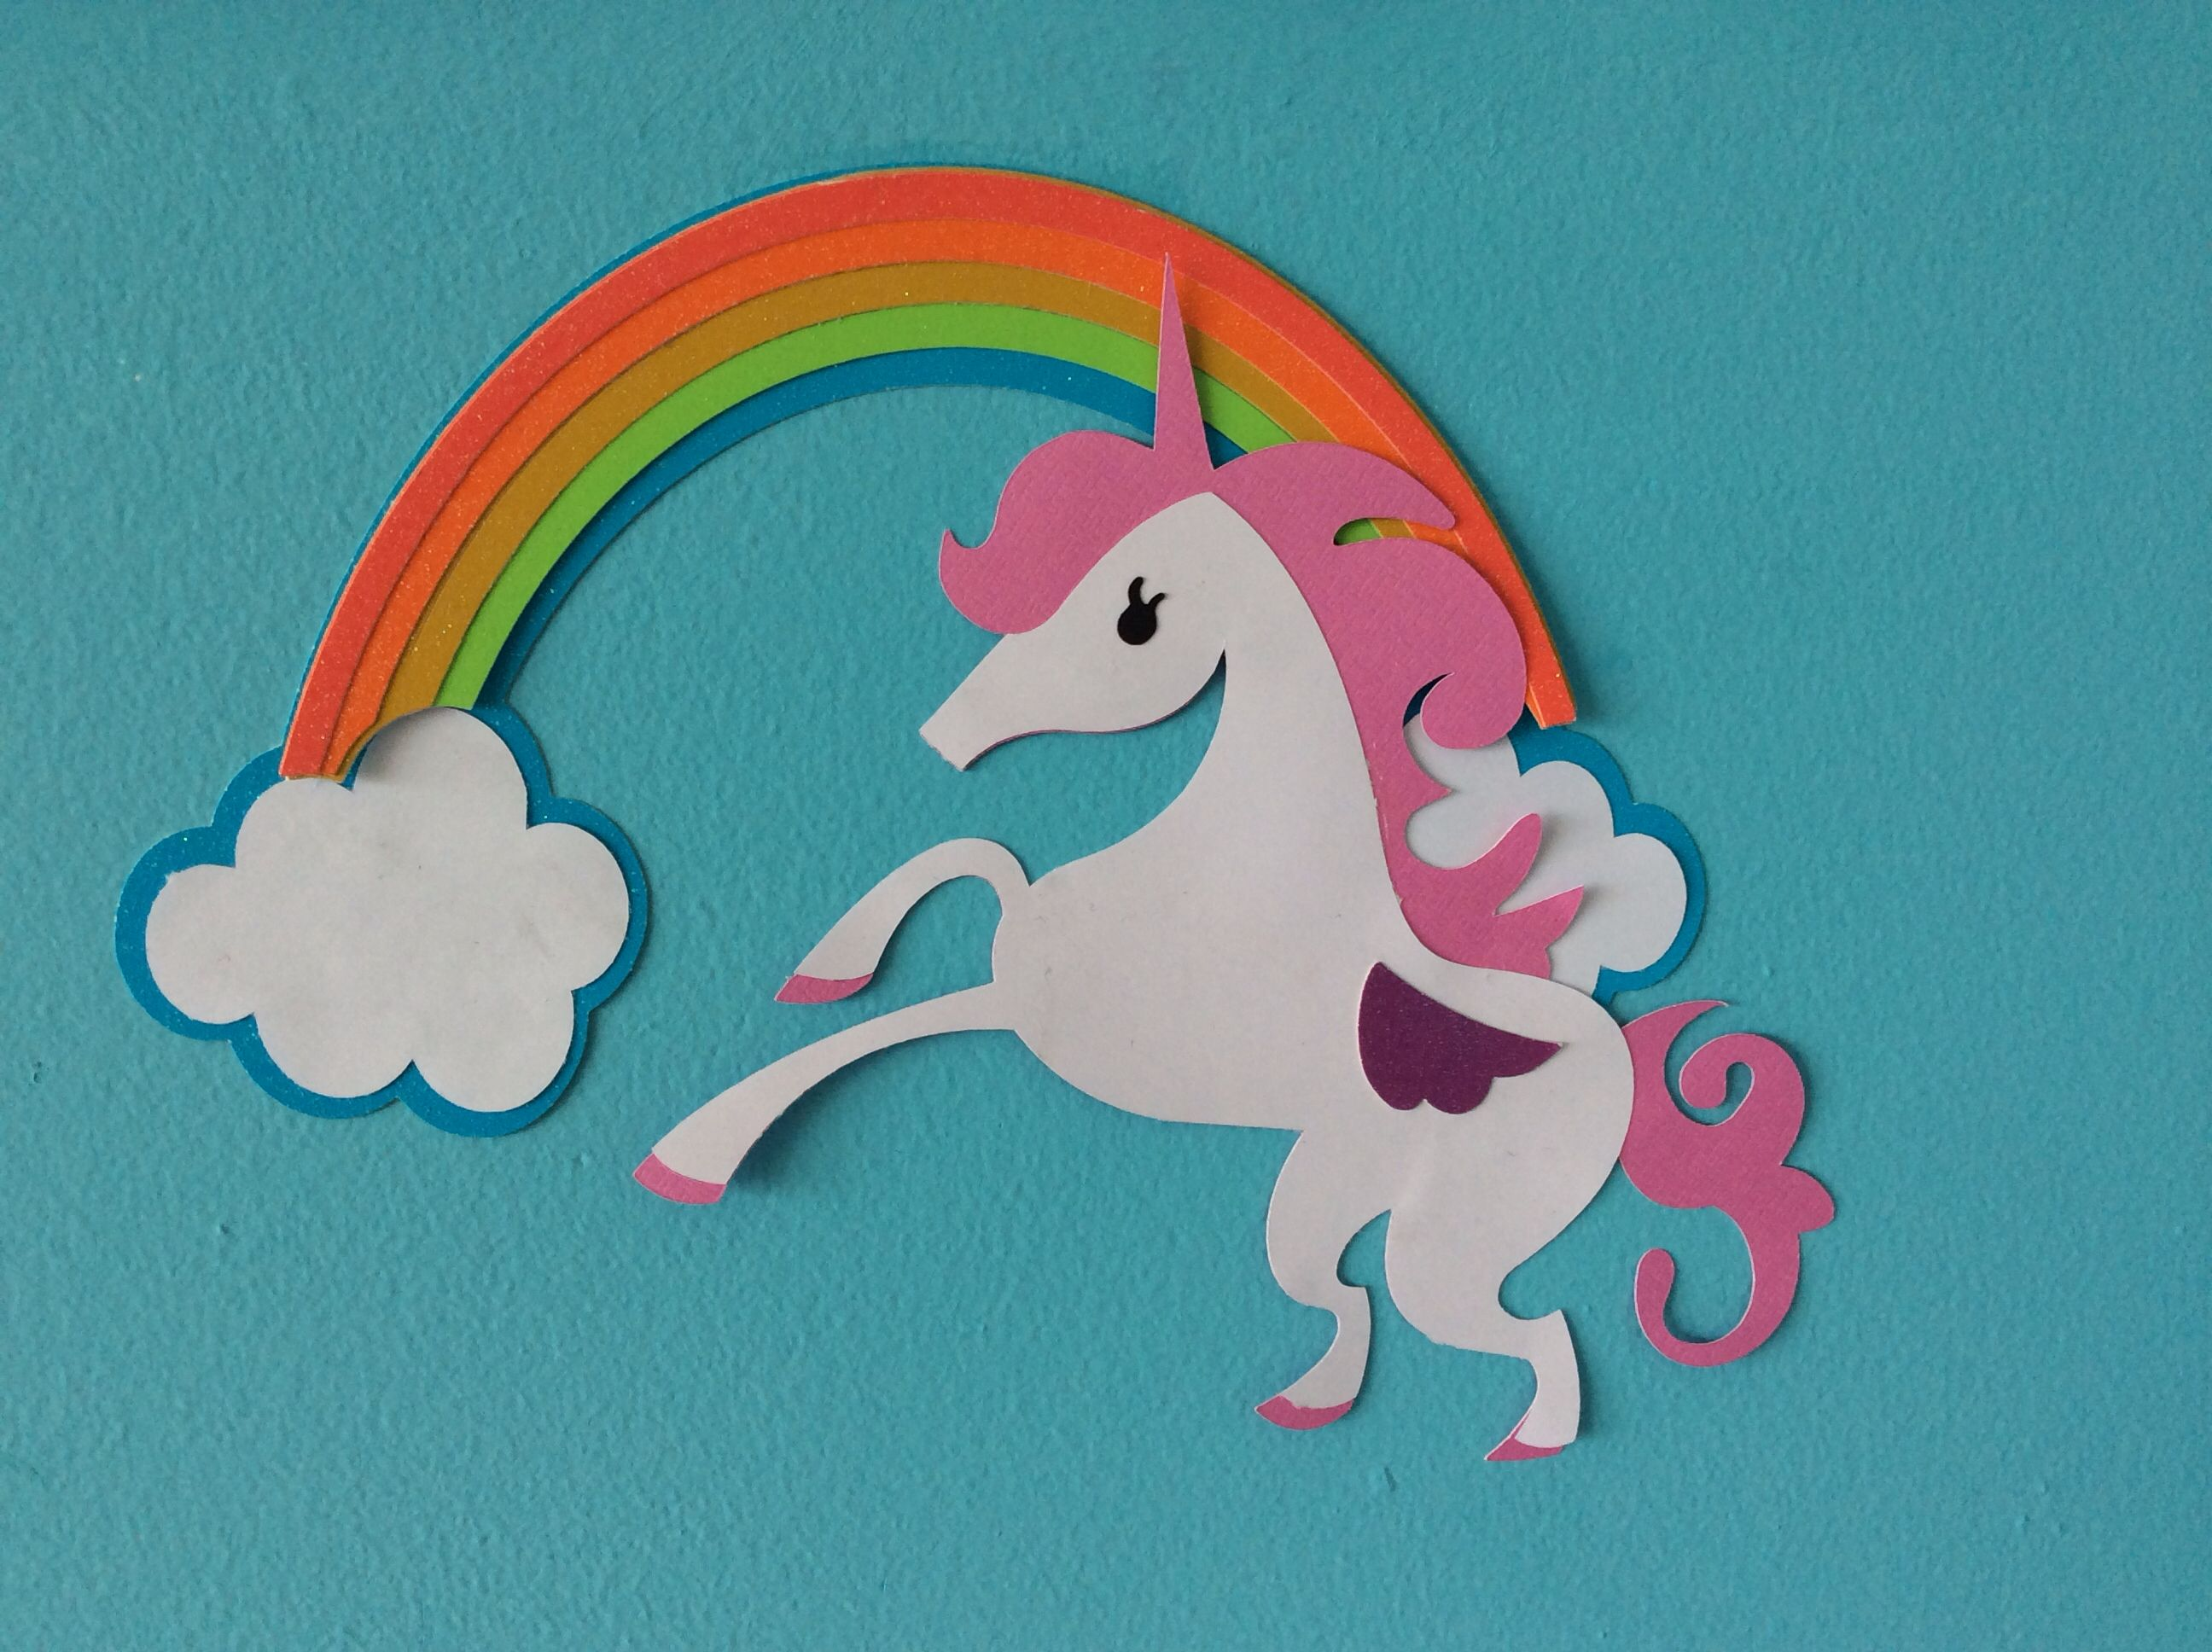 Narwhal and unicorn cartoon narwhal jokes funny pictures - Unicorn Made With The Cricut